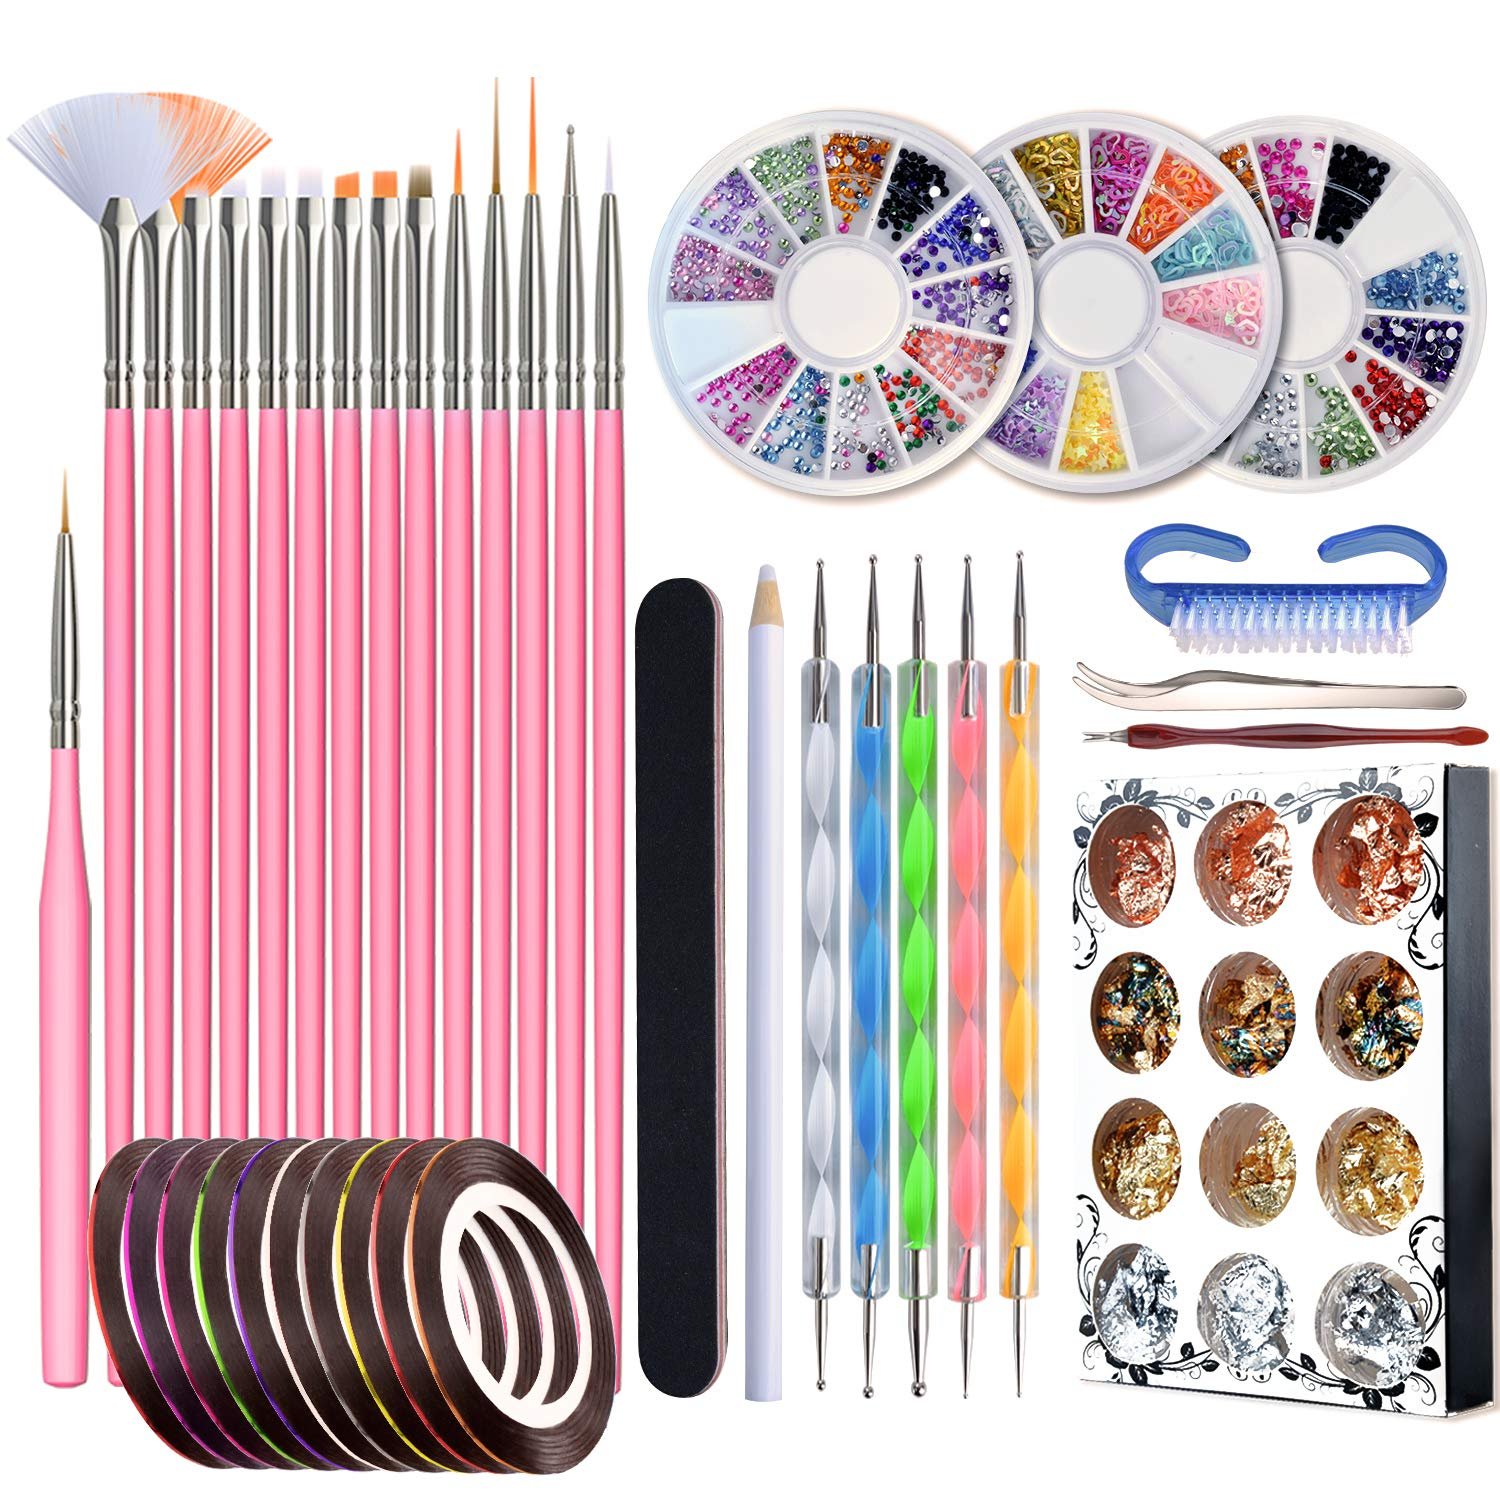 Nail Art Kit, 50pcs Nail Design Tools with 15pcs Nail Art Brushes, Nail Dotting Tool, Nail Foil, Nail Striping Tapes and Rhinestones Crystals